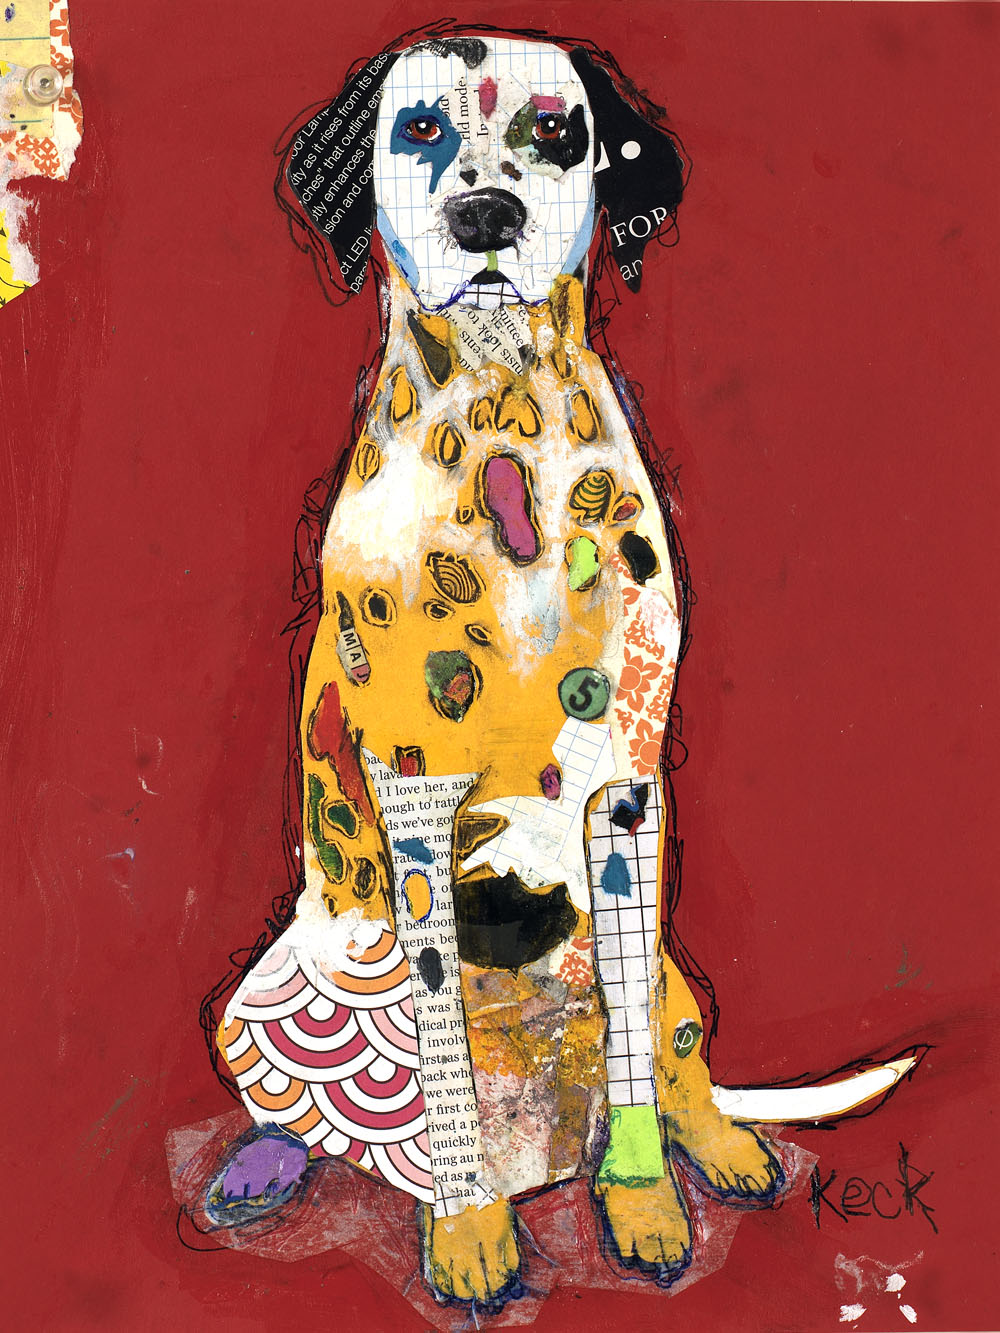 dog art, pop dog art, dog art collage, dalmation art, dalmation abstract art, dalmation collage art, dalmation pop art, michel keck dalmation dog art